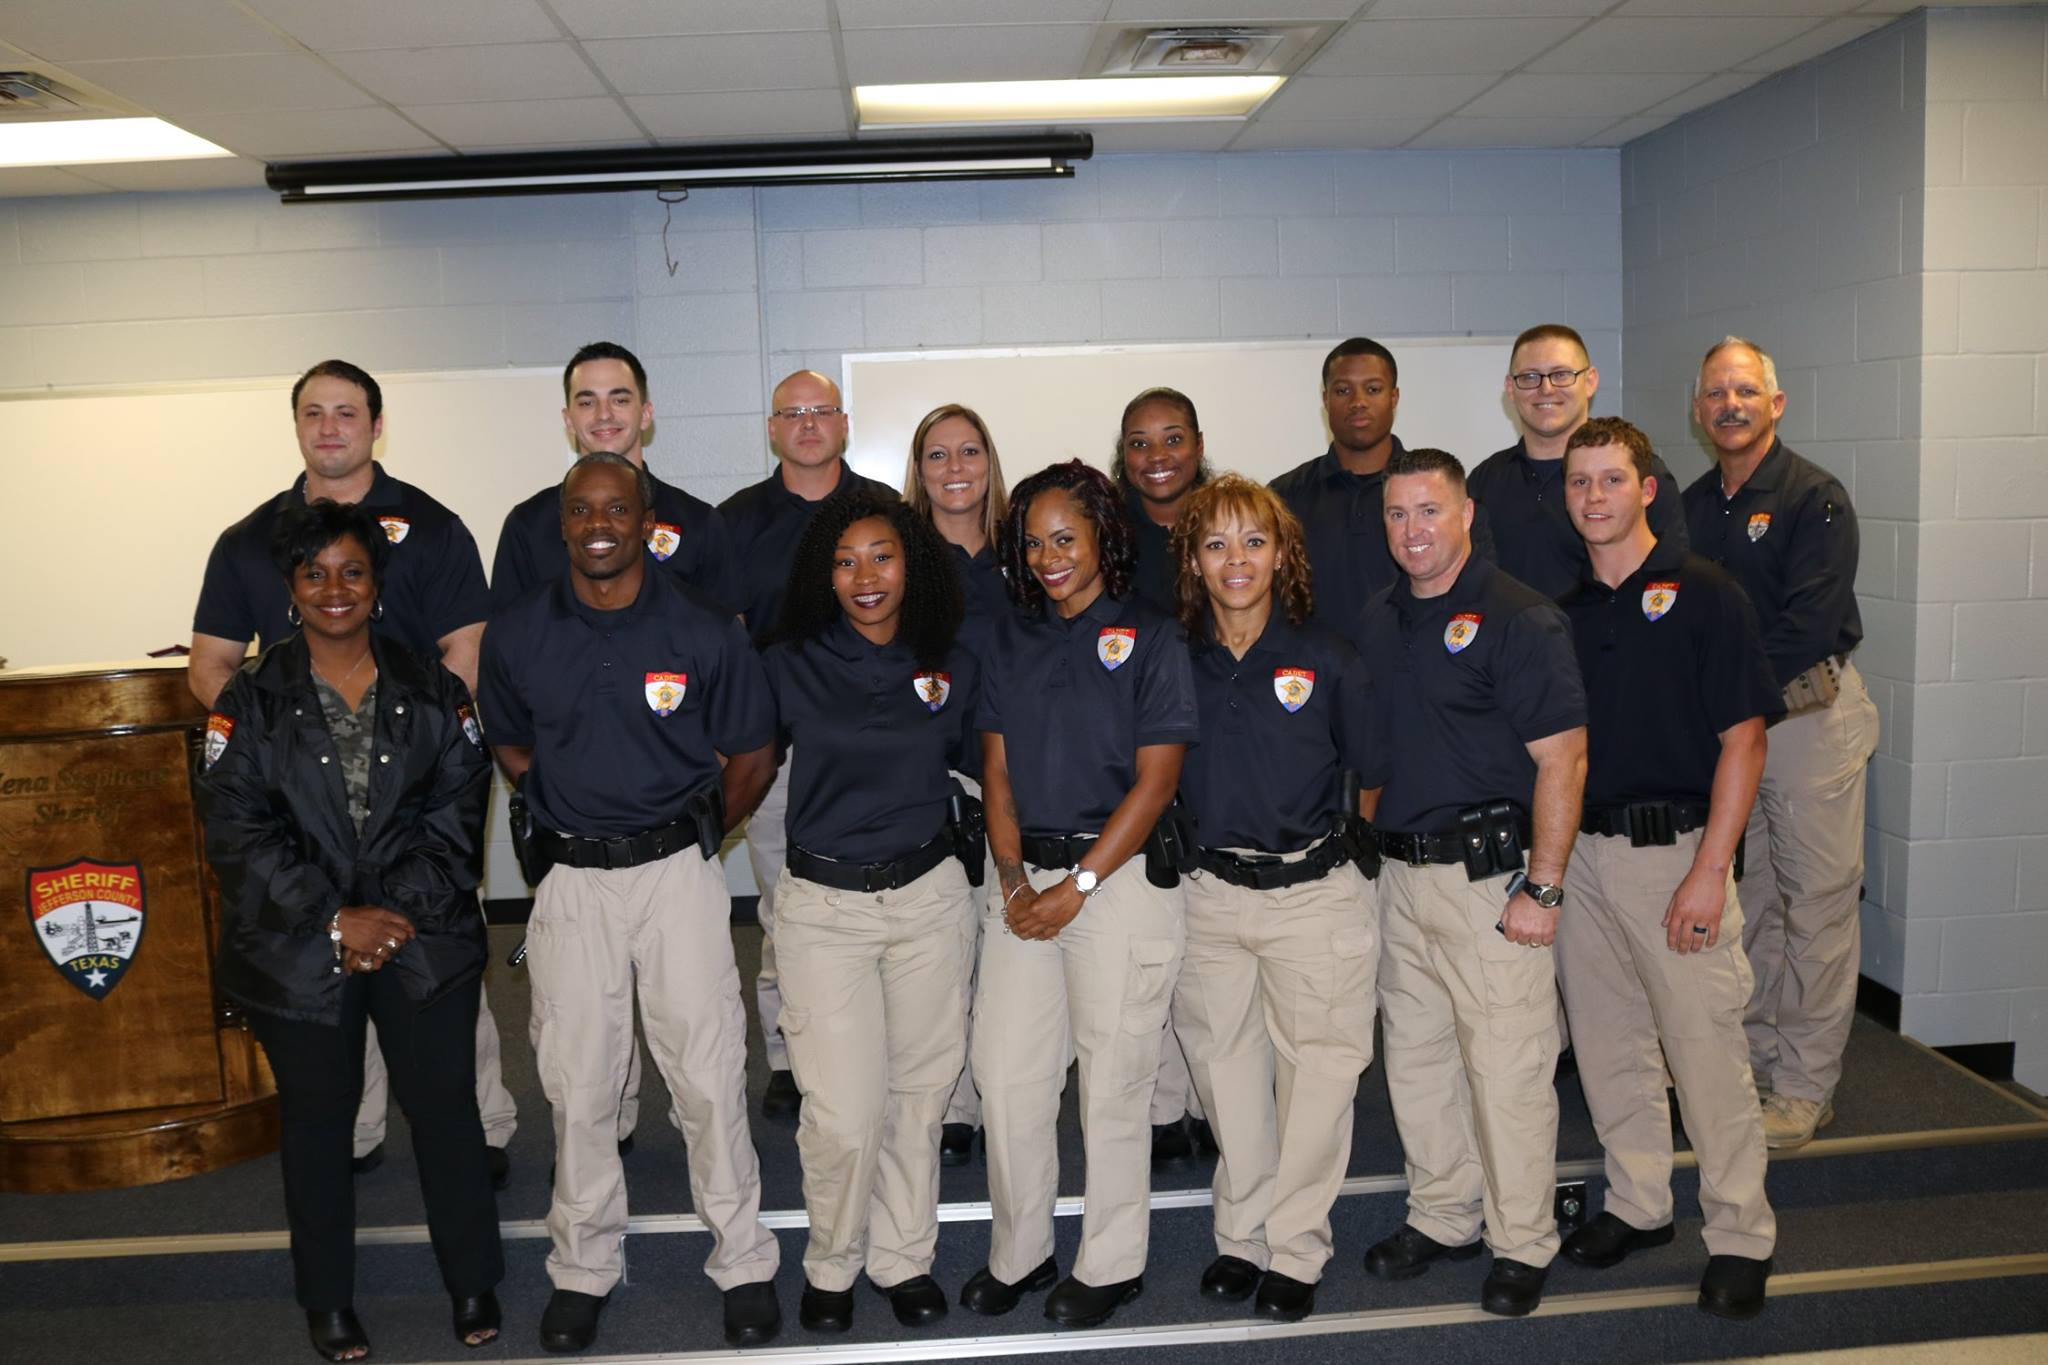 A group photos of deputy trainees with Sheriff Zena Stephens.